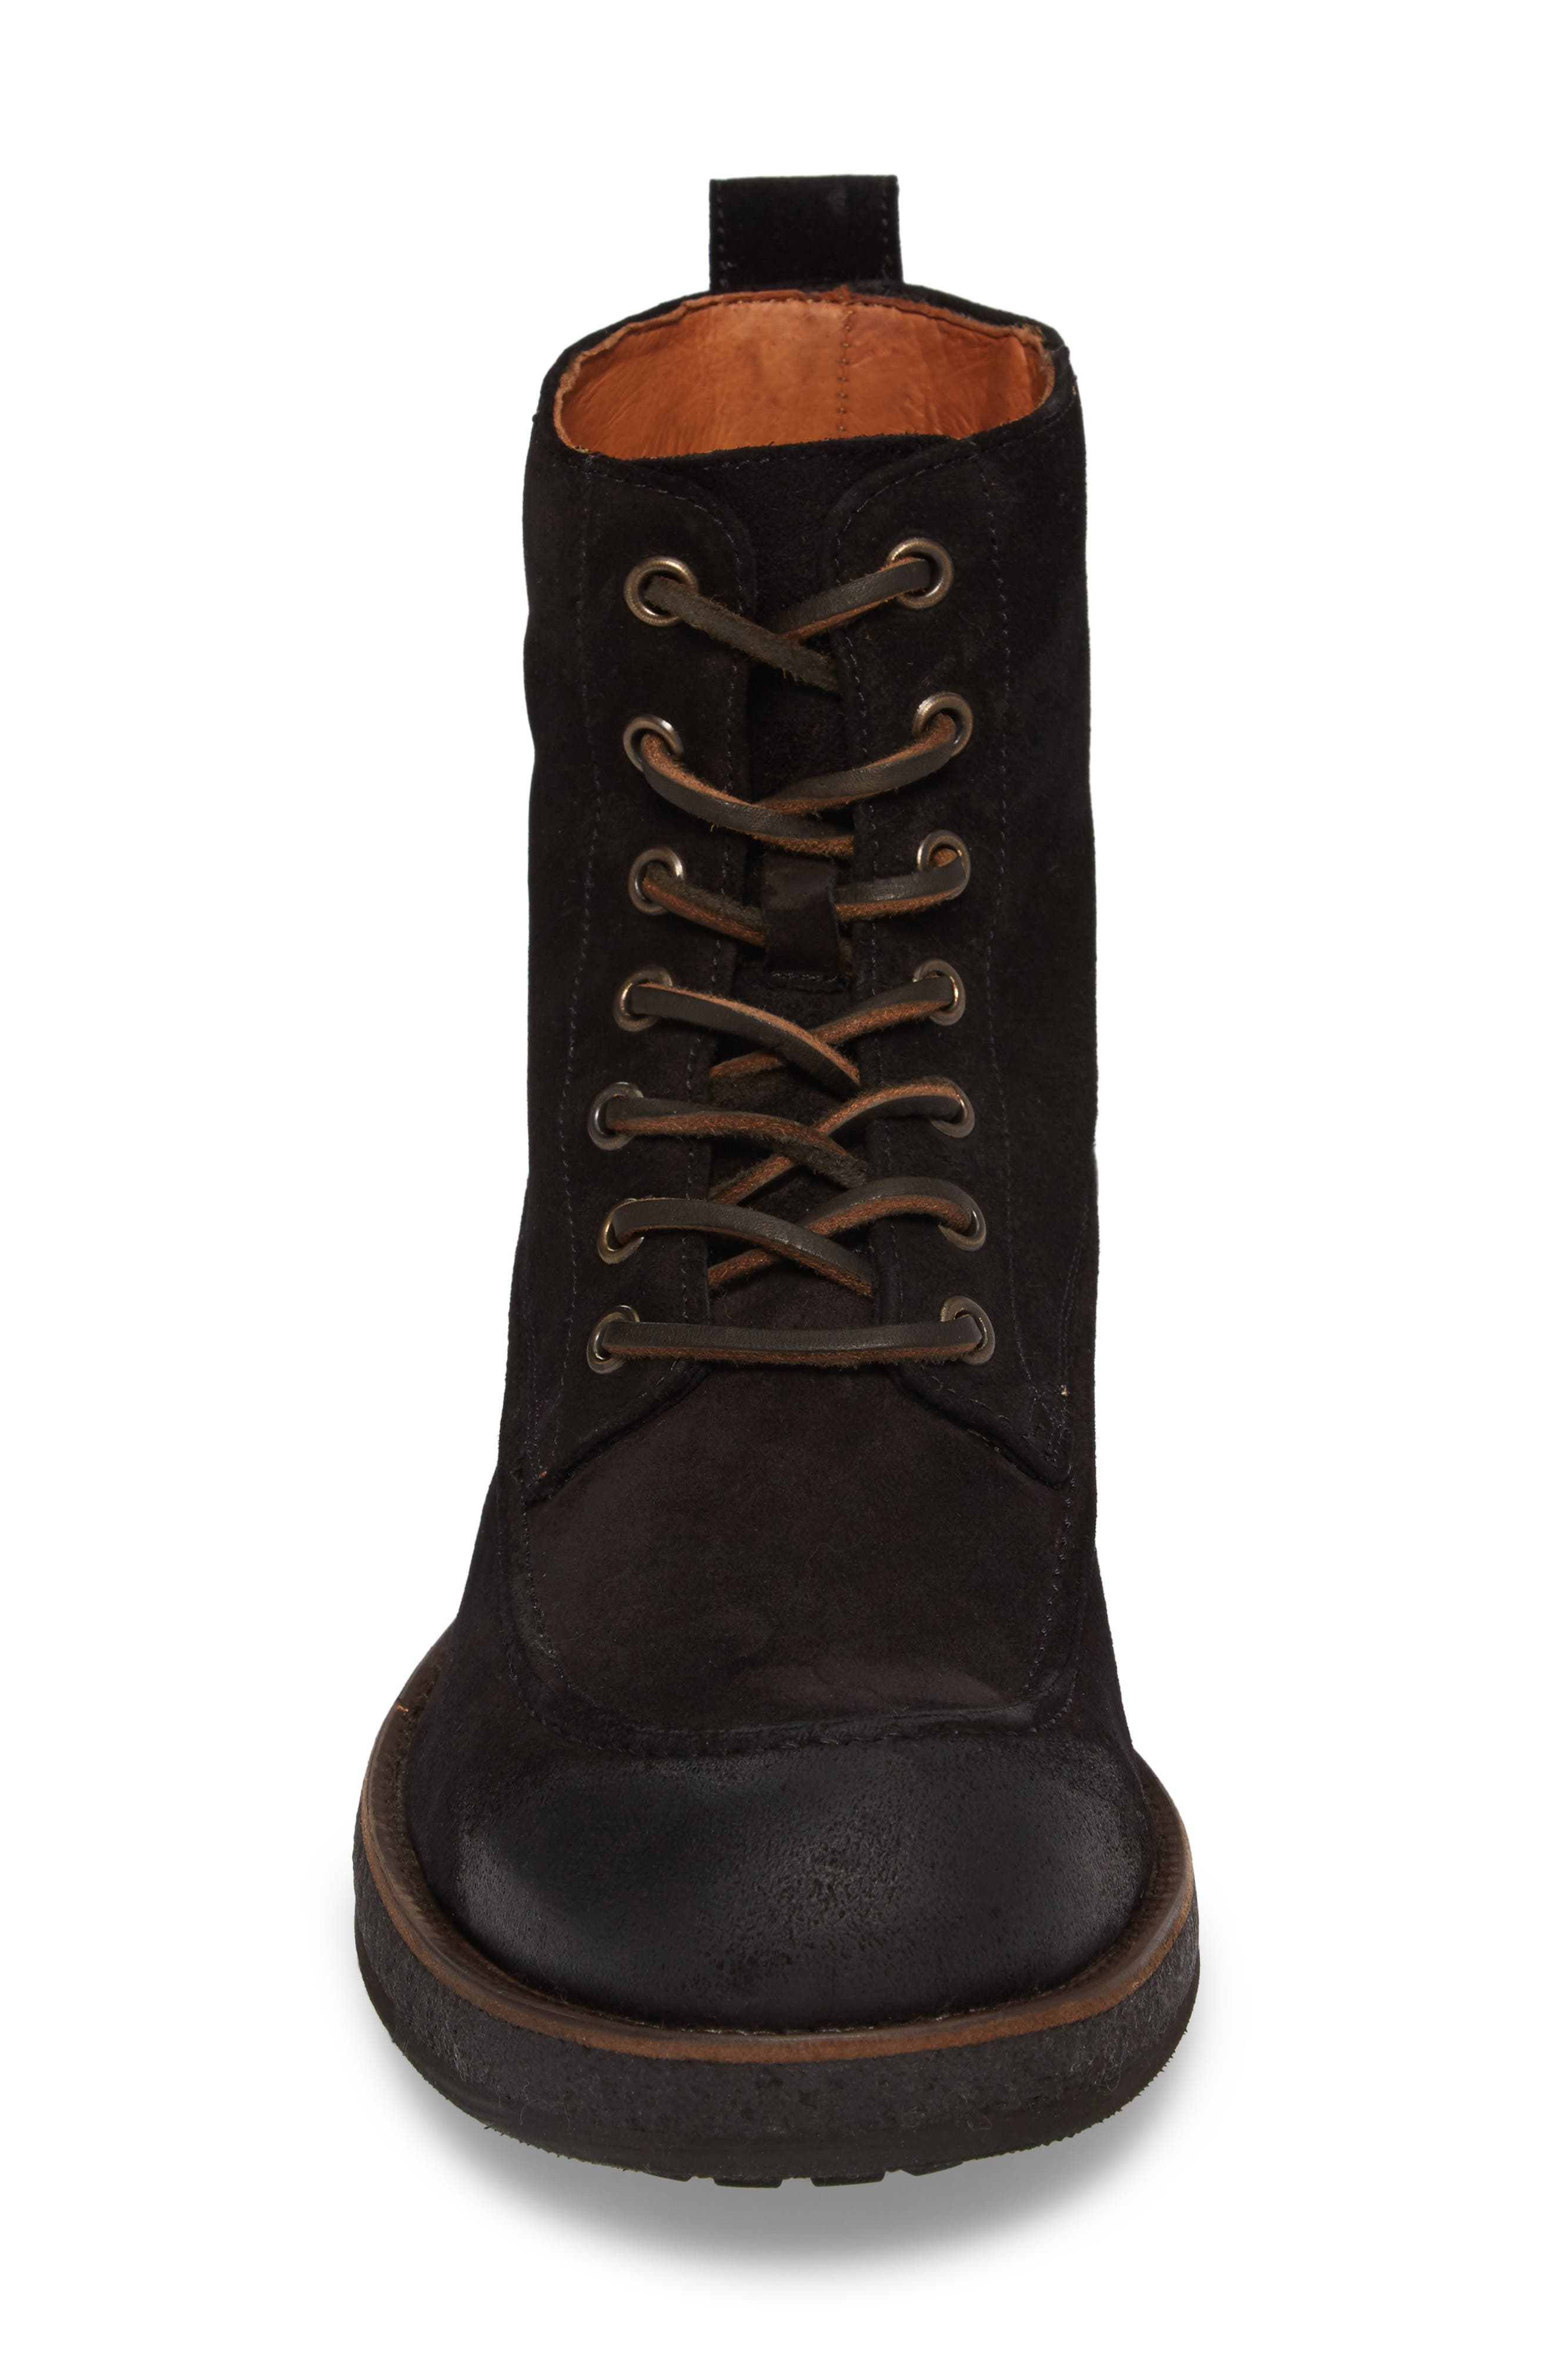 FRYE,                             Rainier Waxed Work Boot,                             Alternate thumbnail 4, color,                             001